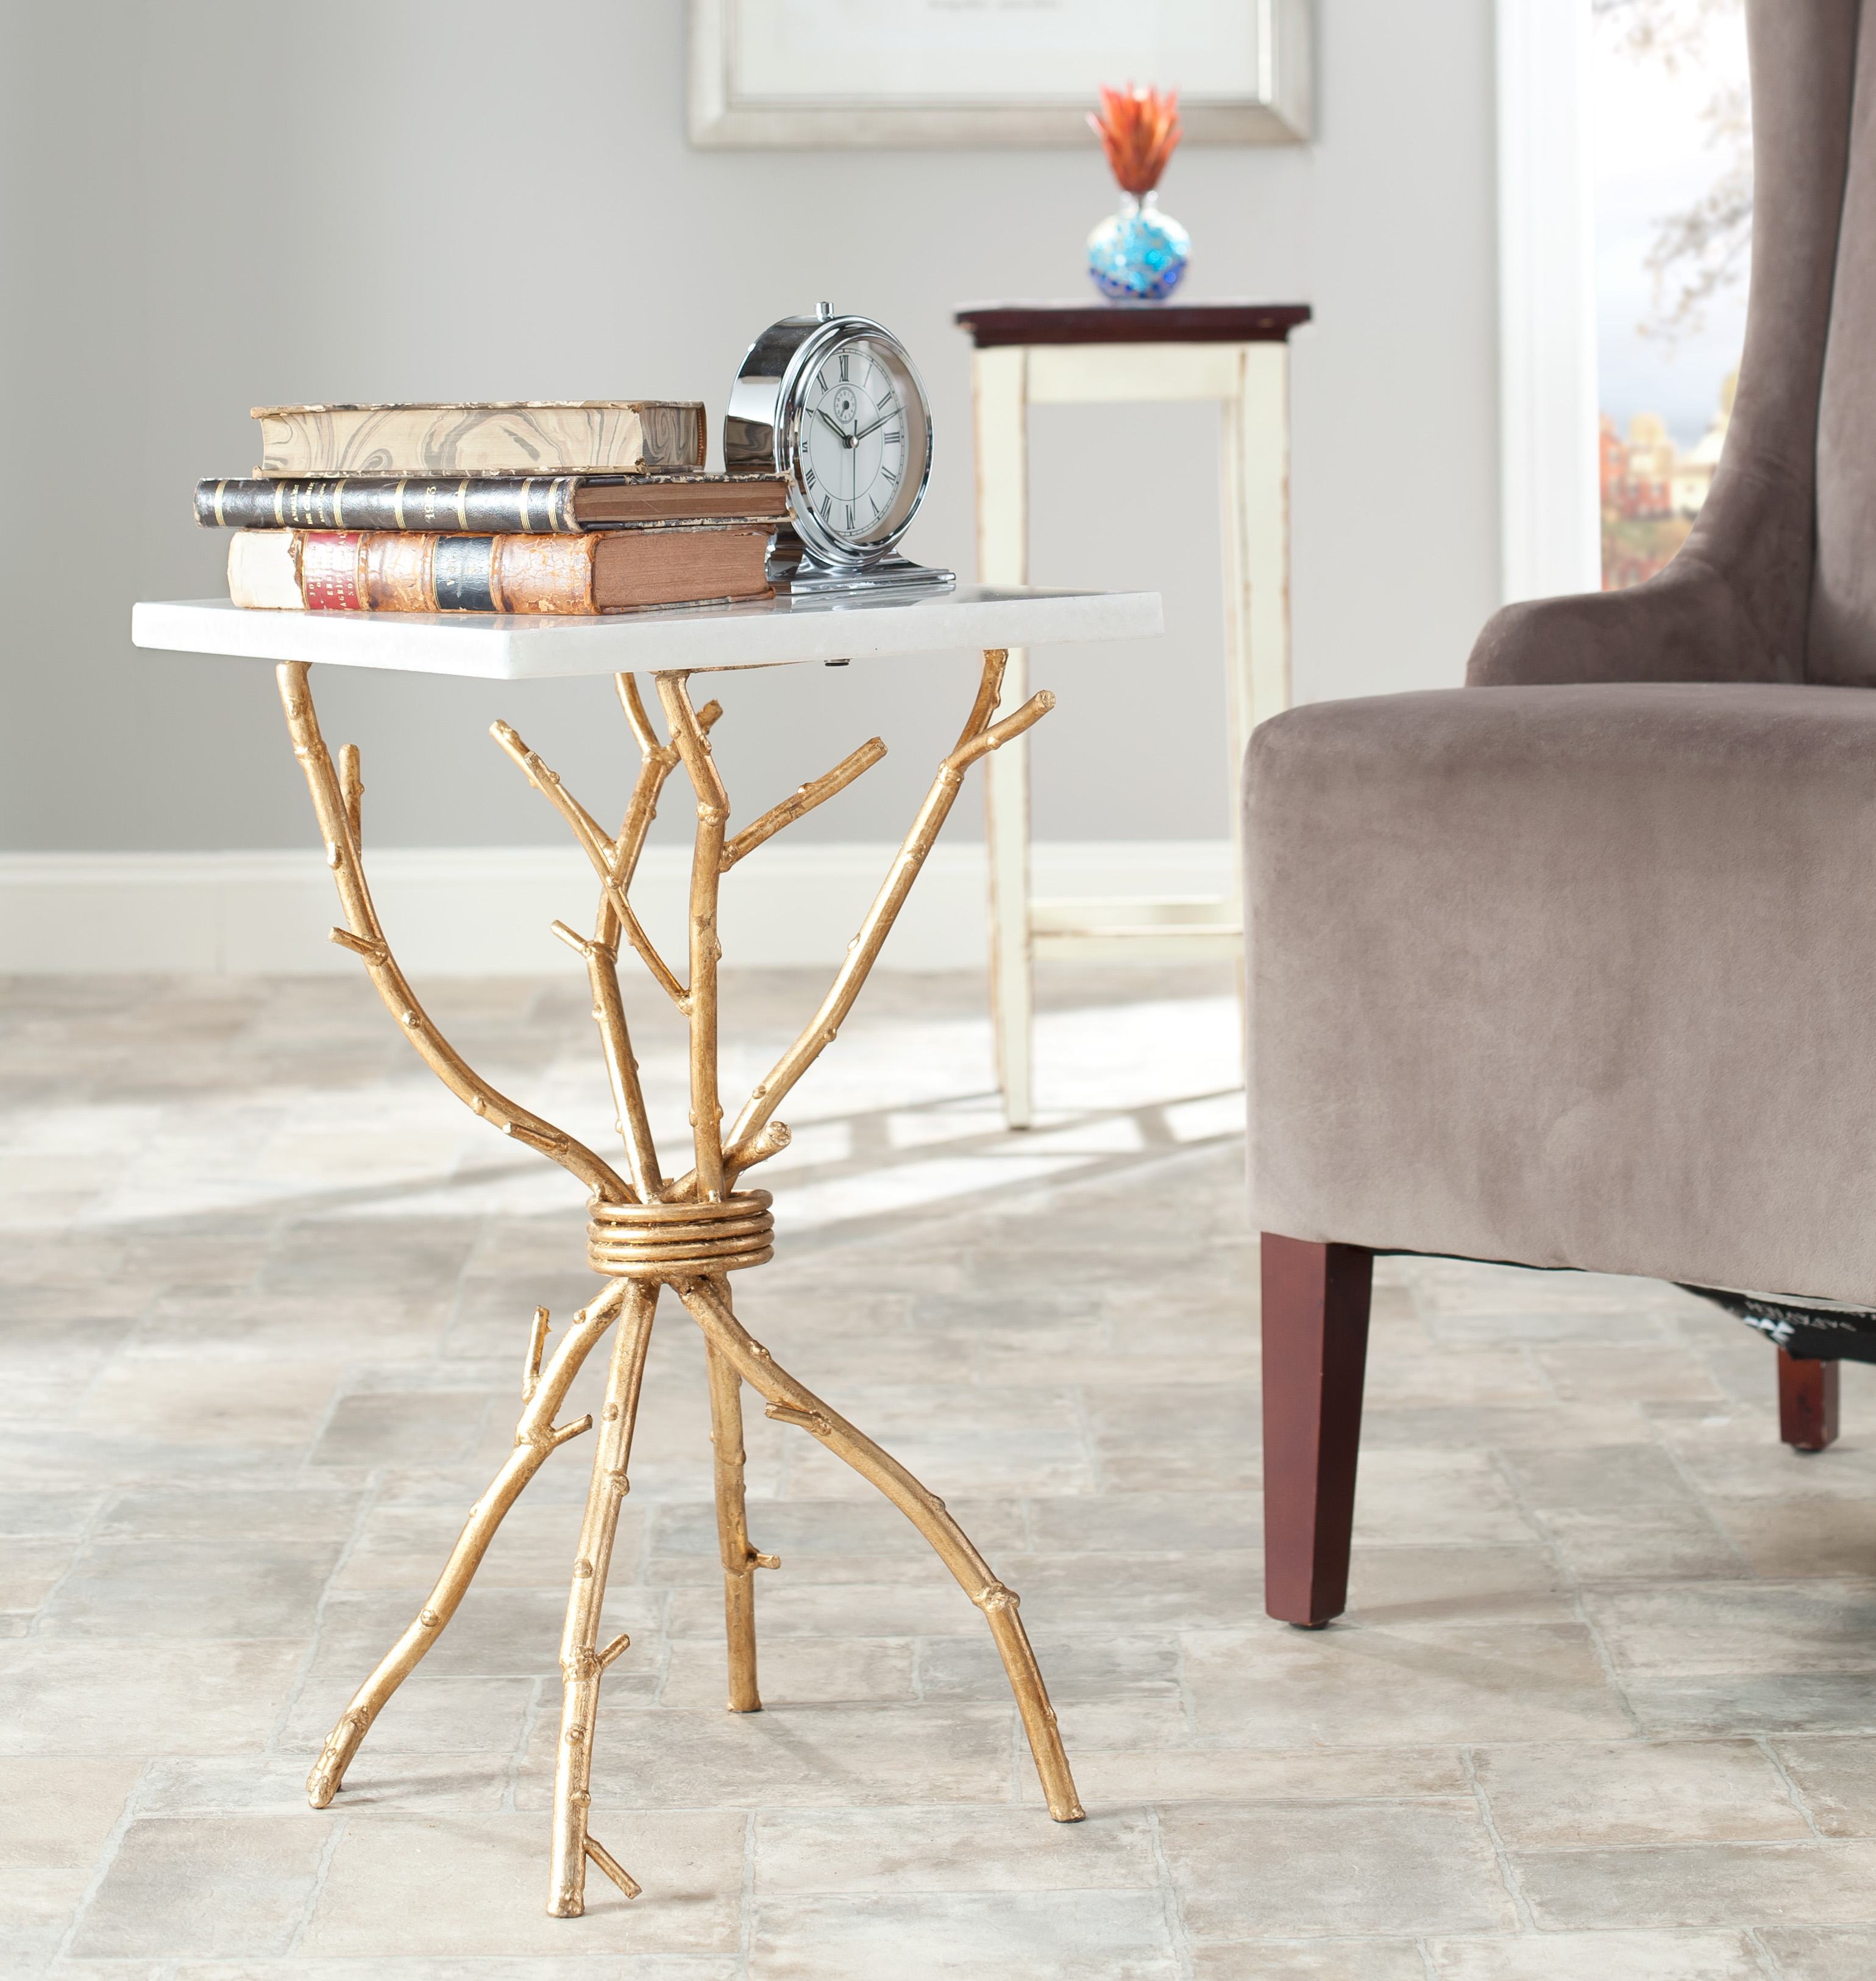 safavieh alexa mabrle top gold accent table prod mainstays coffee glass entry small contemporary end tables mirrored bedside lockers solid wood sofa bunnings patio furniture round